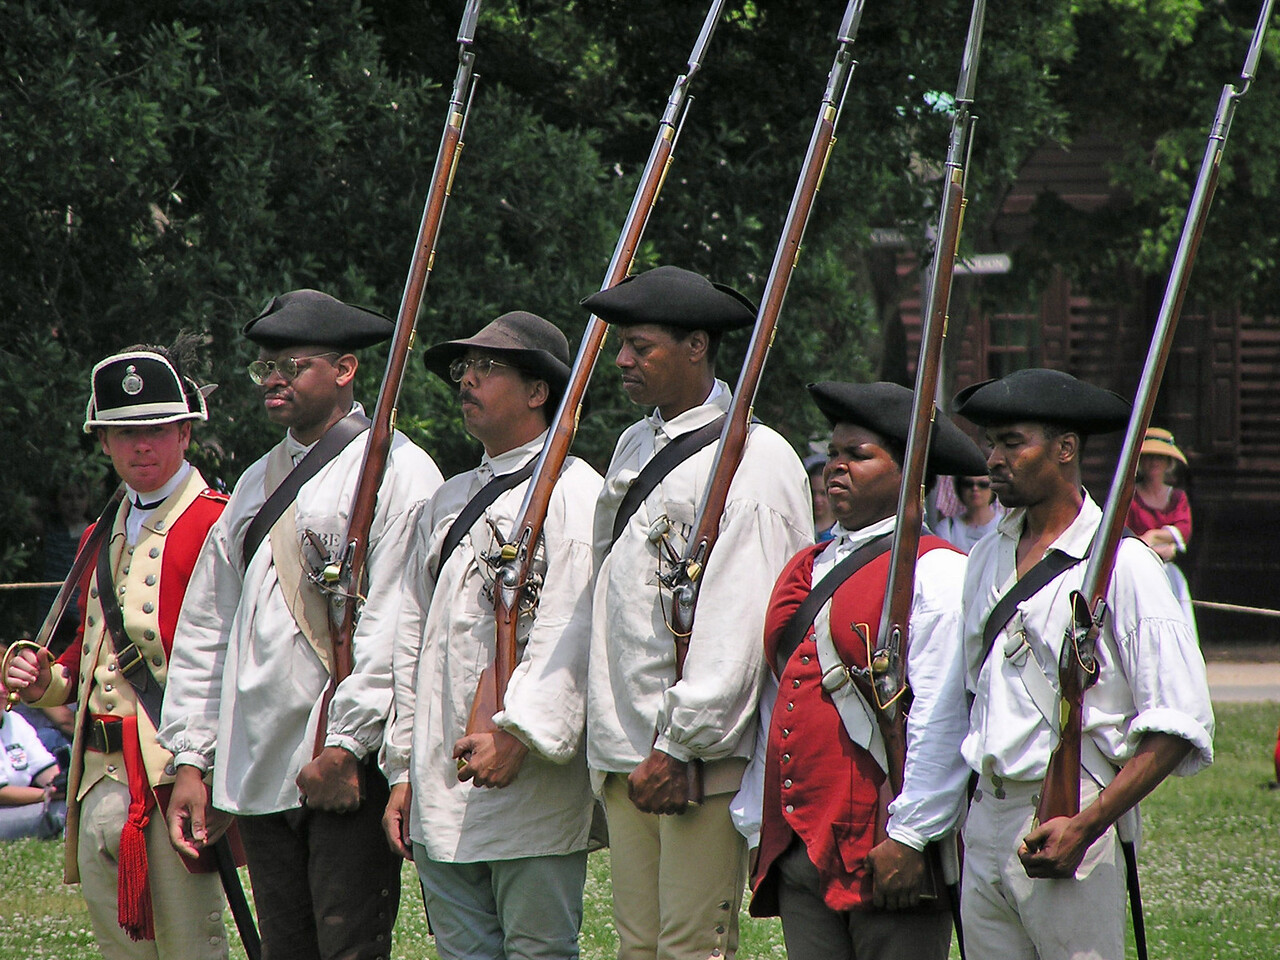 Colonial Re-enactment